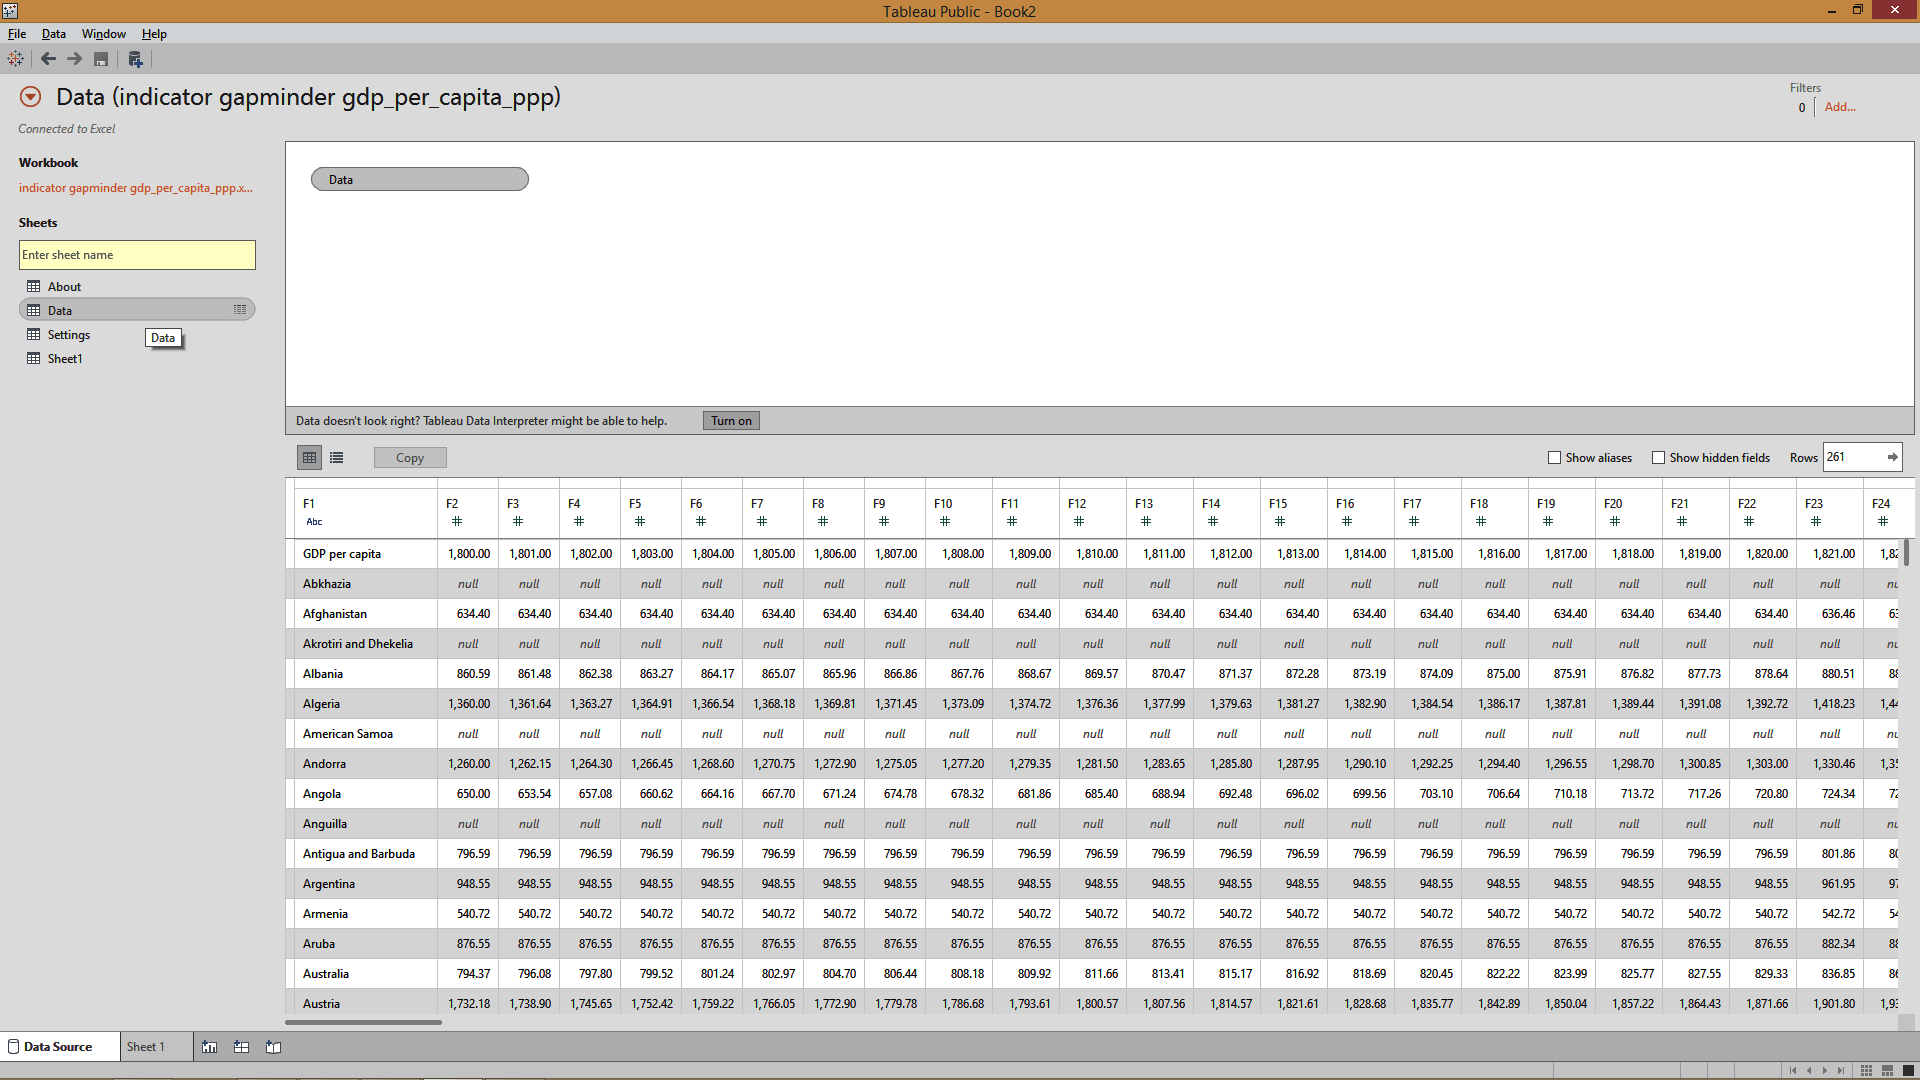 connecting excel to tableau